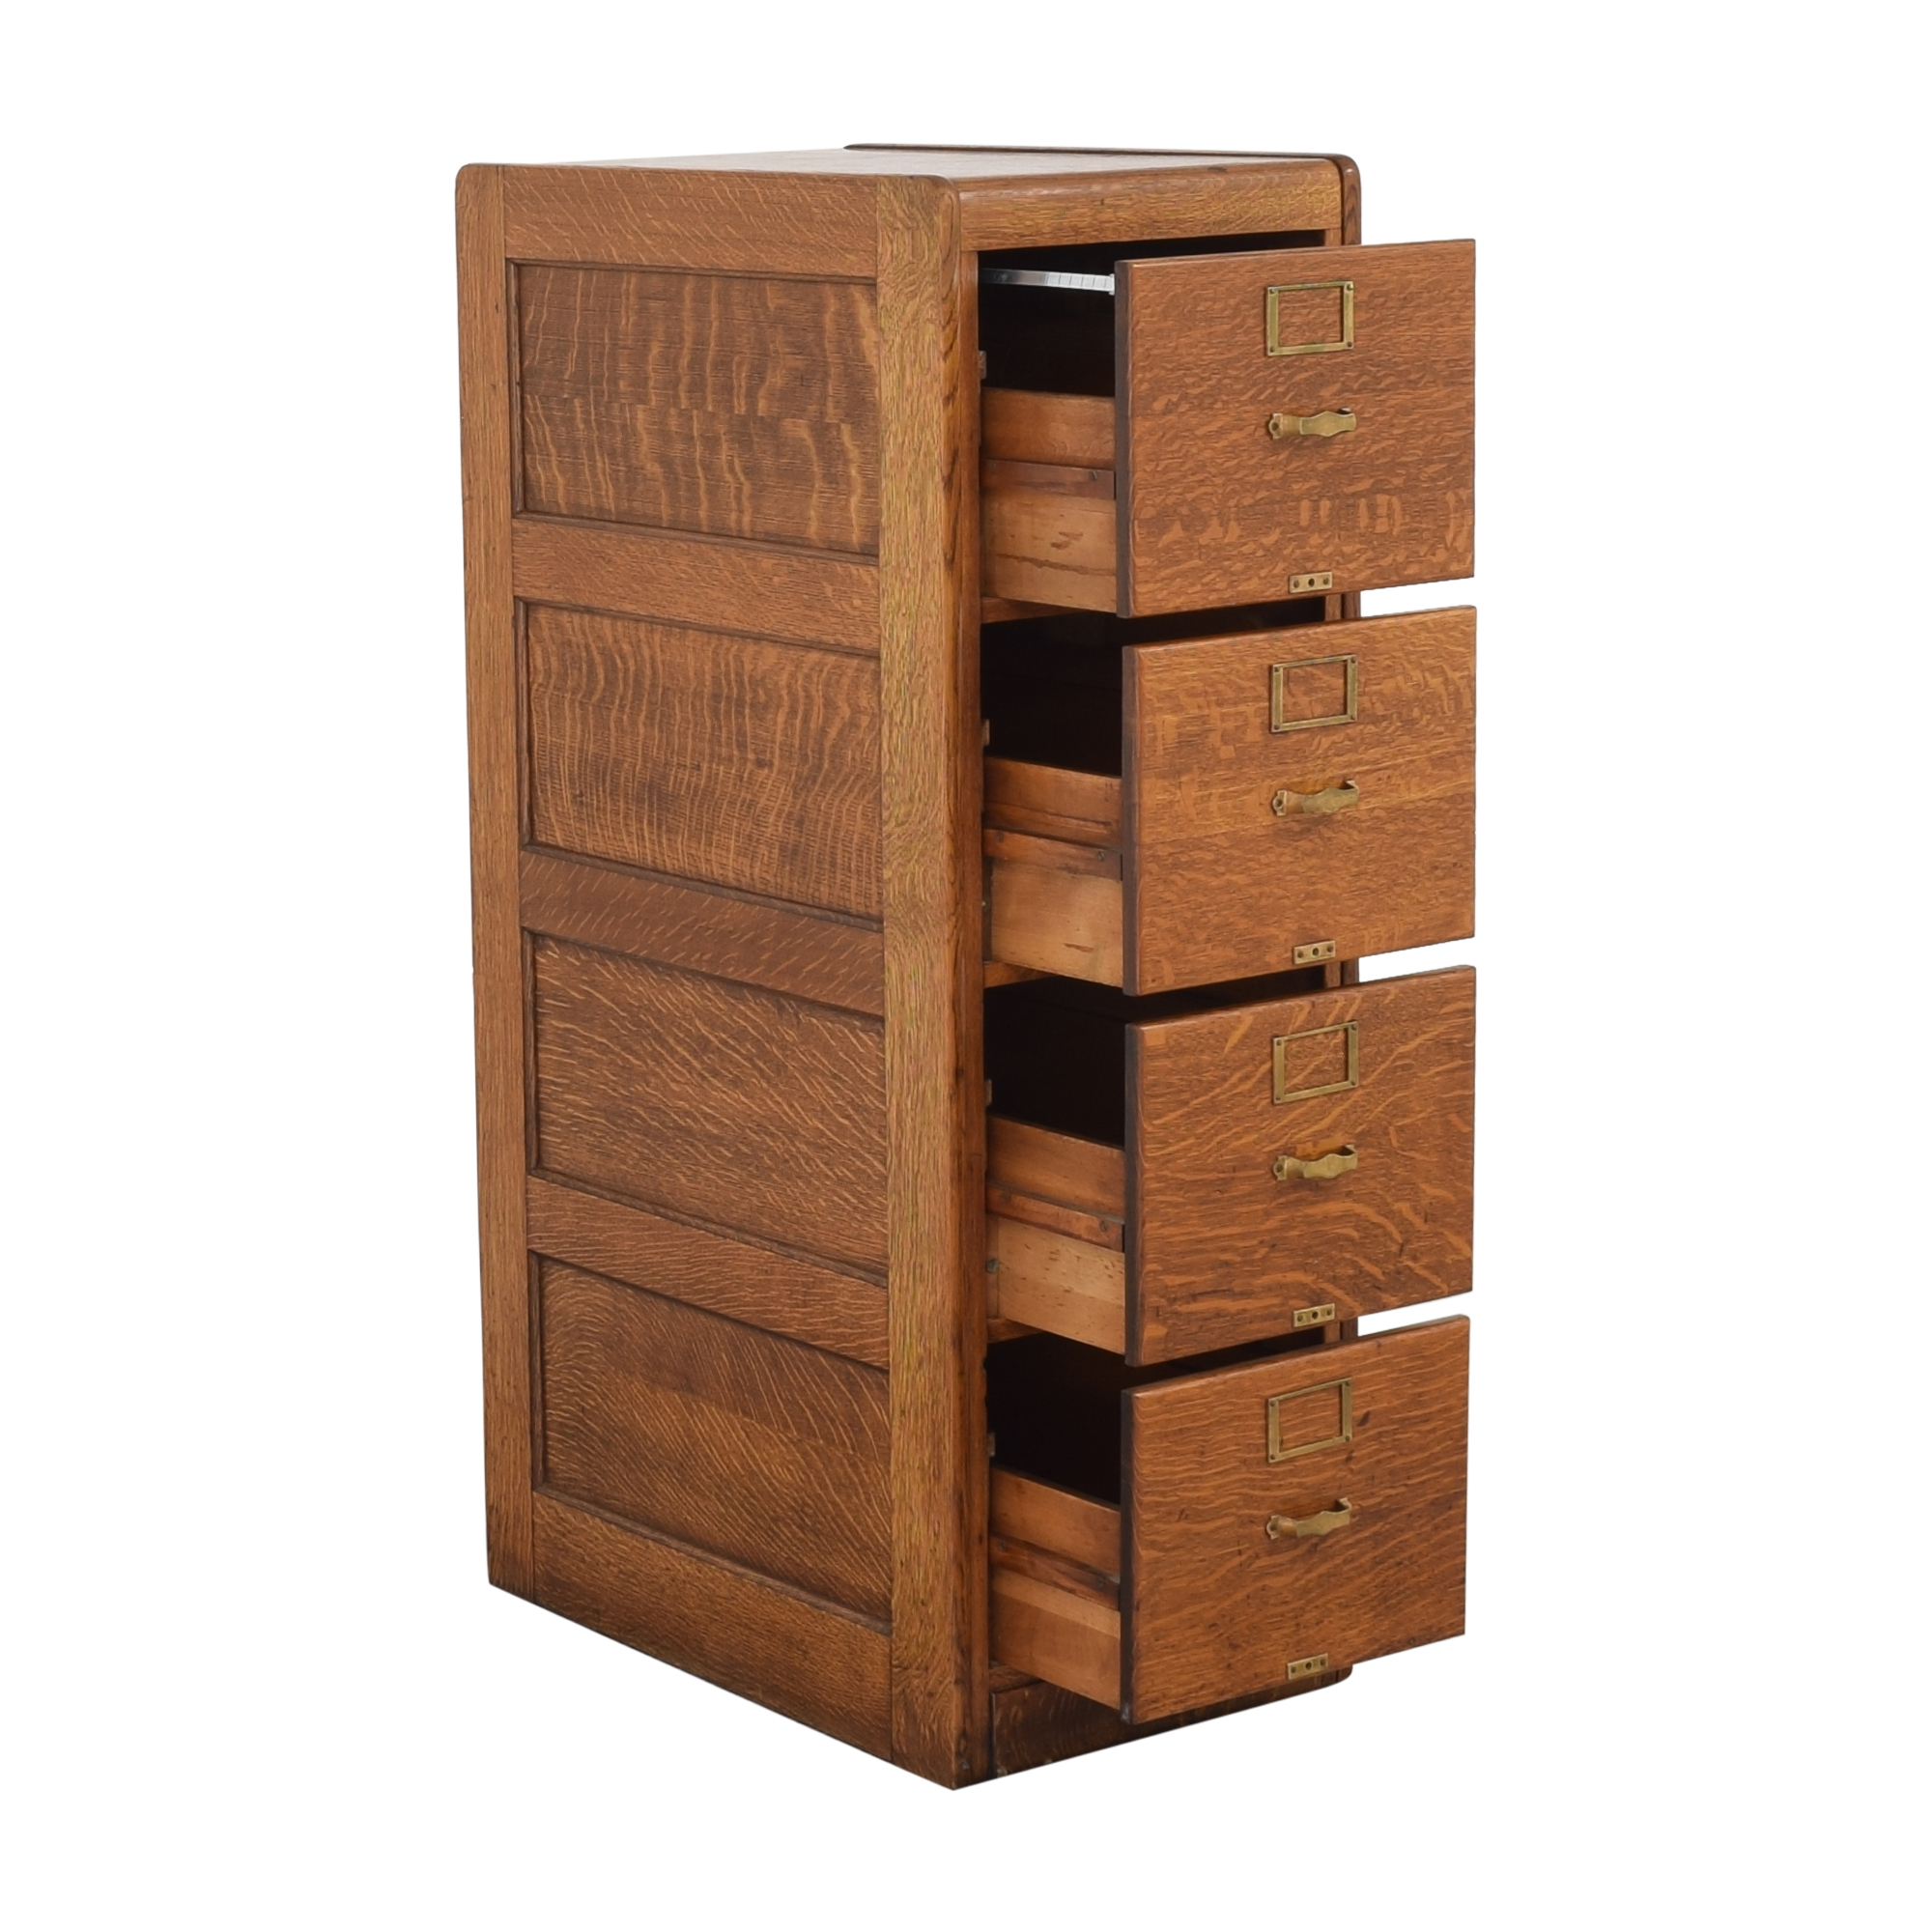 Library Bureau Sole Makers Library Bureau Sole Makers File Cabinet brown